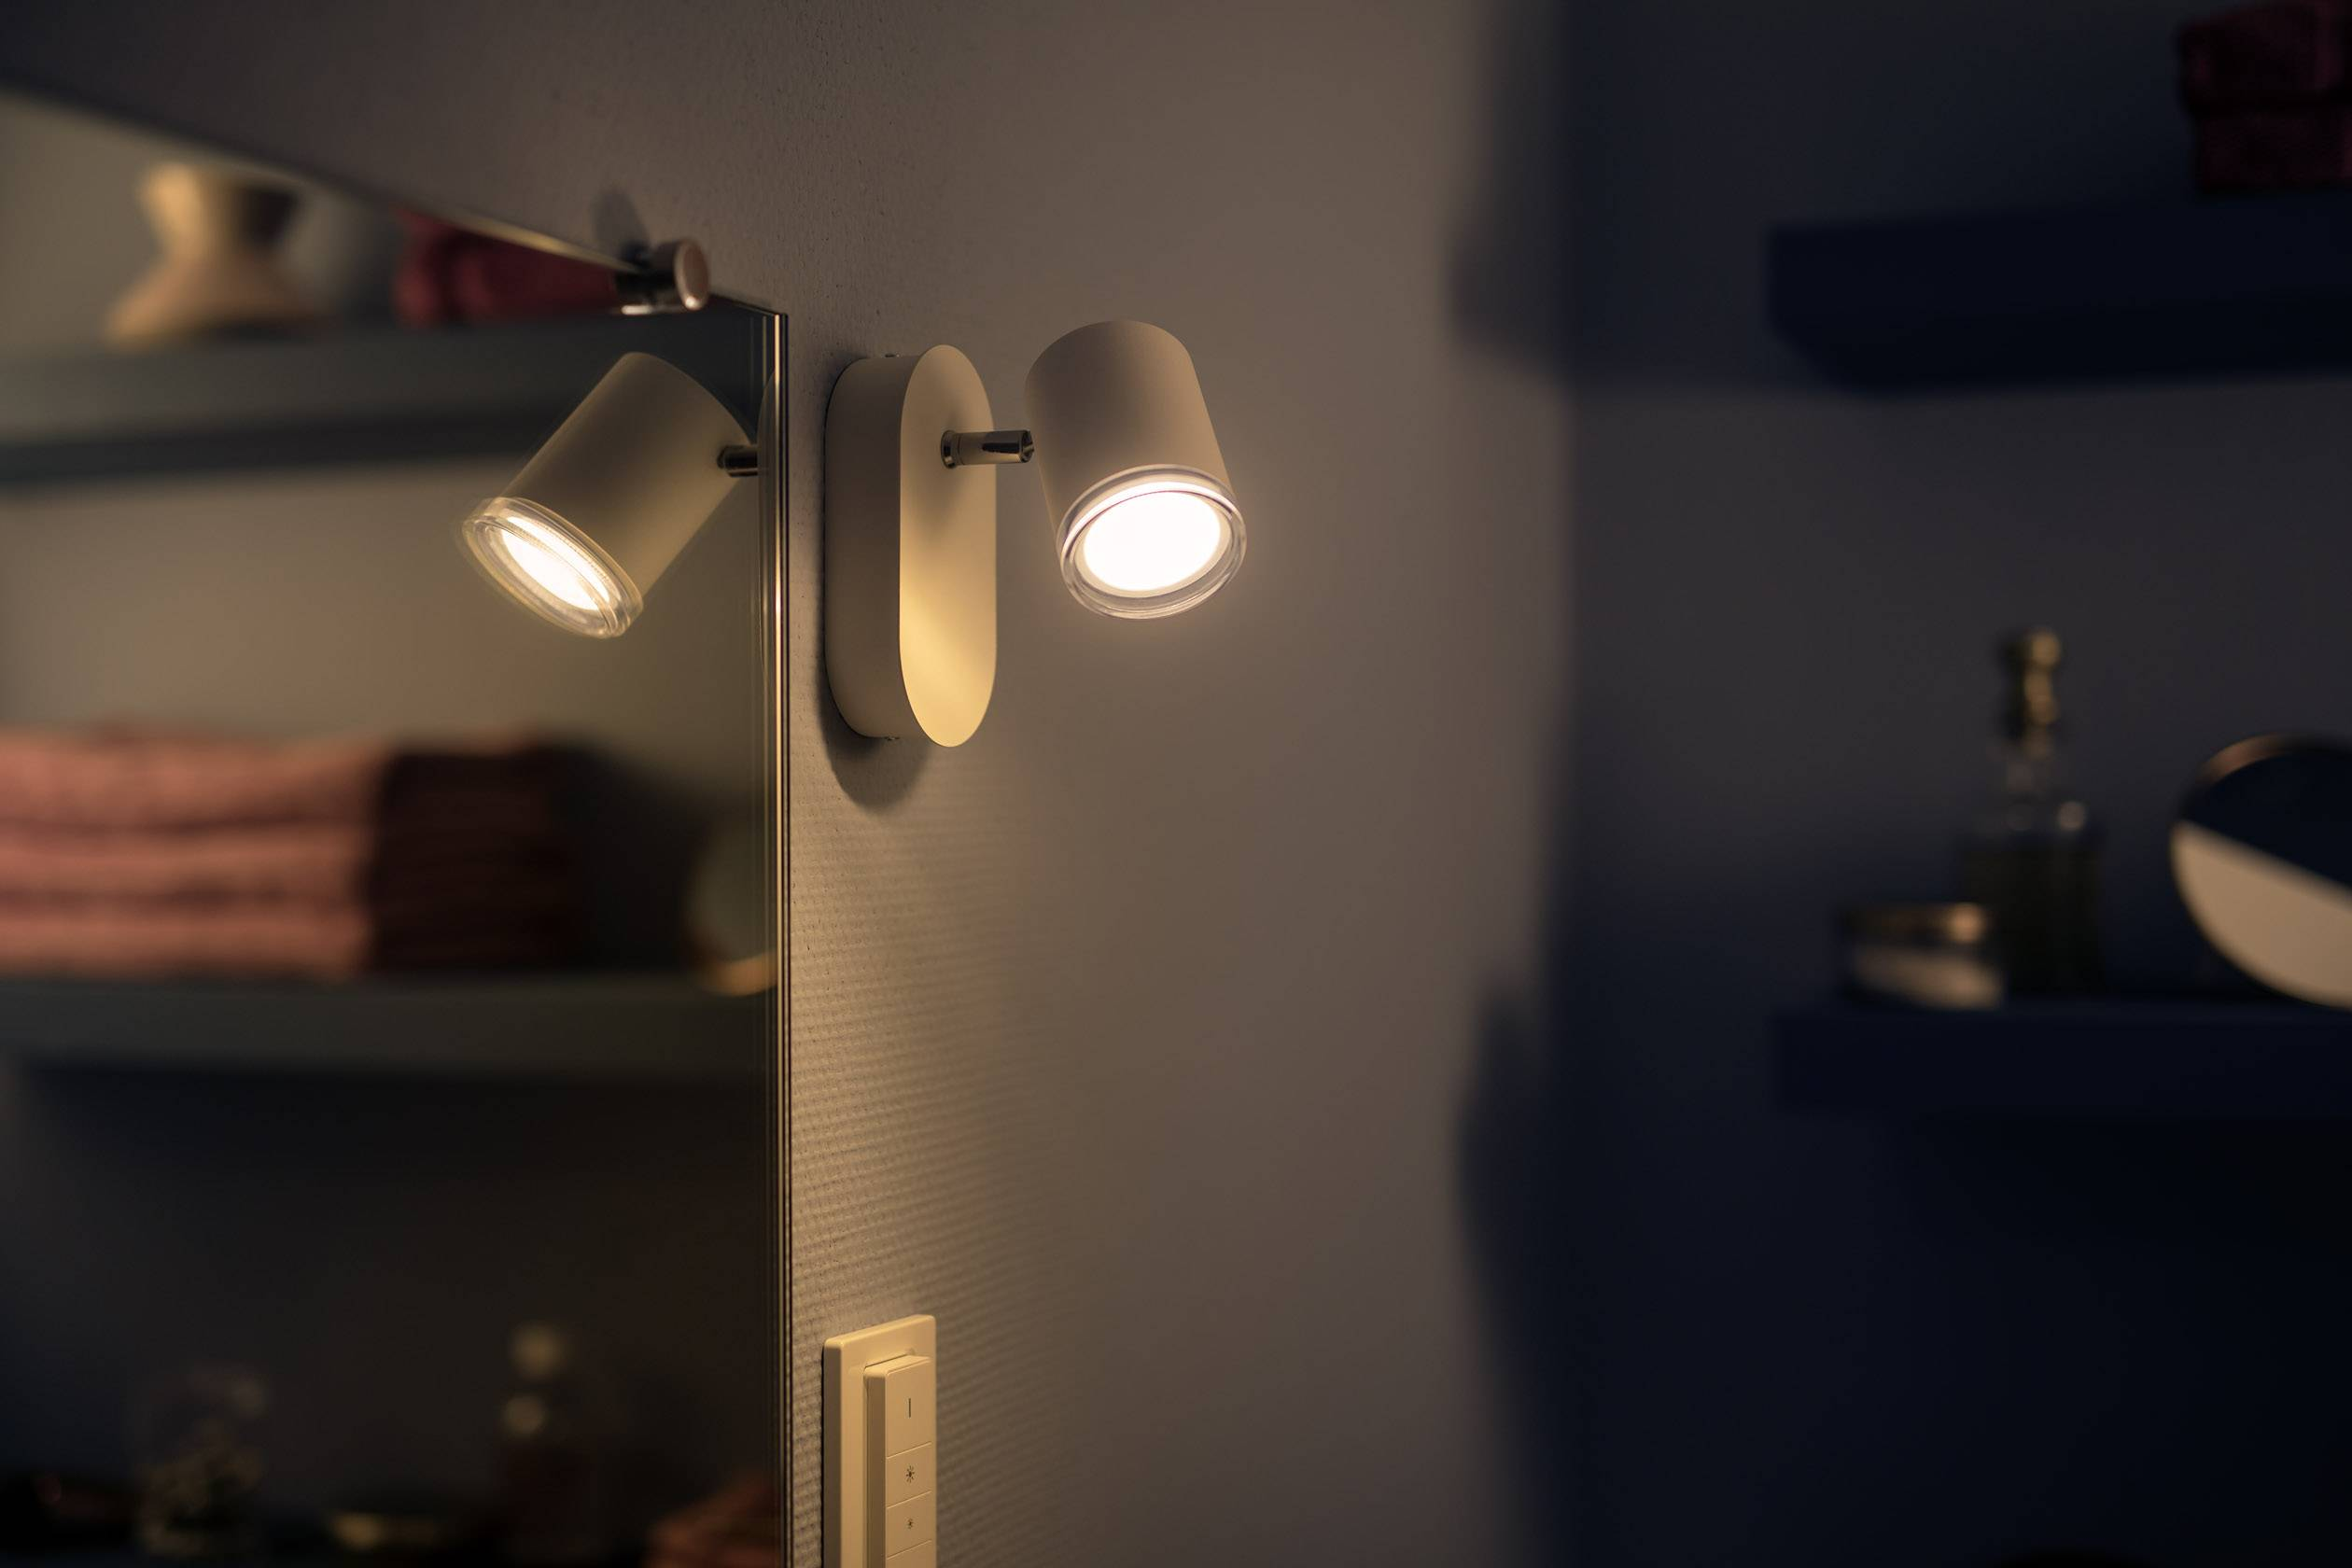 Stroomverbruik Hue Lampen : Philips lighting hue led spiegellamp met dimmer adore gu10 5.5 w